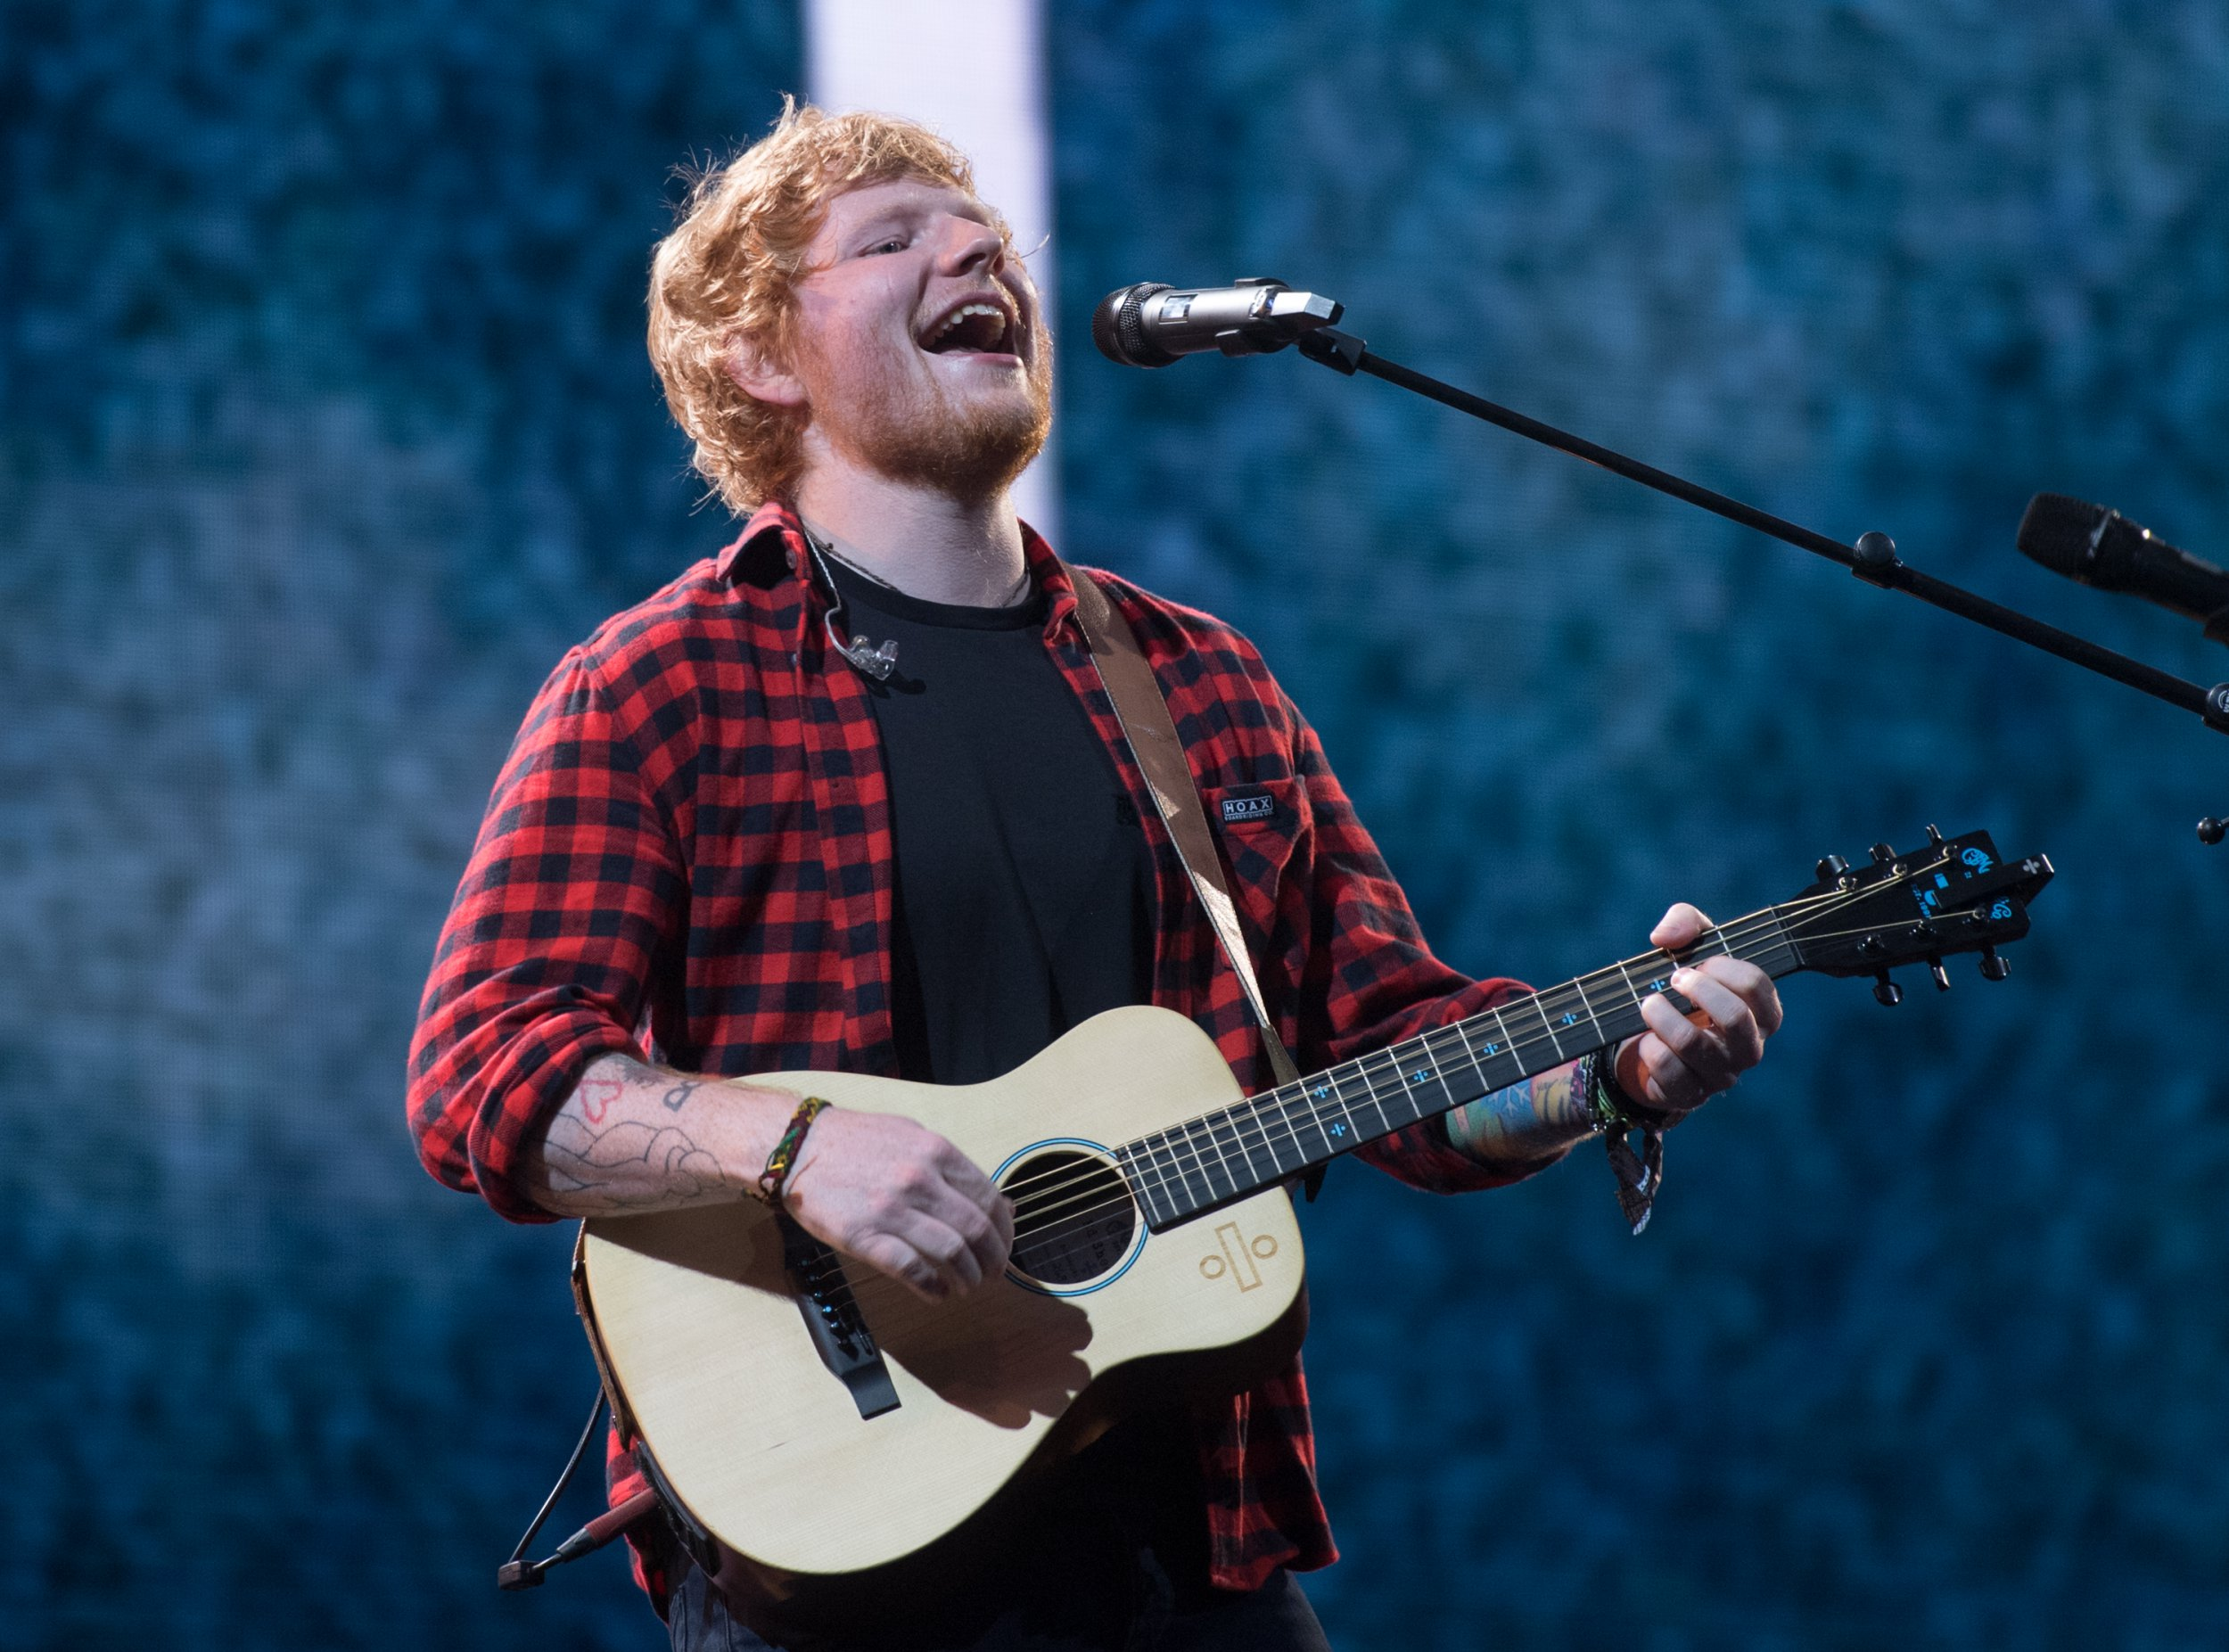 GLASTONBURY, ENGLAND - JUNE 25: Ed Sheeran performs on day 4 of the Glastonbury Festival 2017 at Worthy Farm, Pilton on June 25, 2017 in Glastonbury, England. (Photo by Samir Hussein/Redferns)